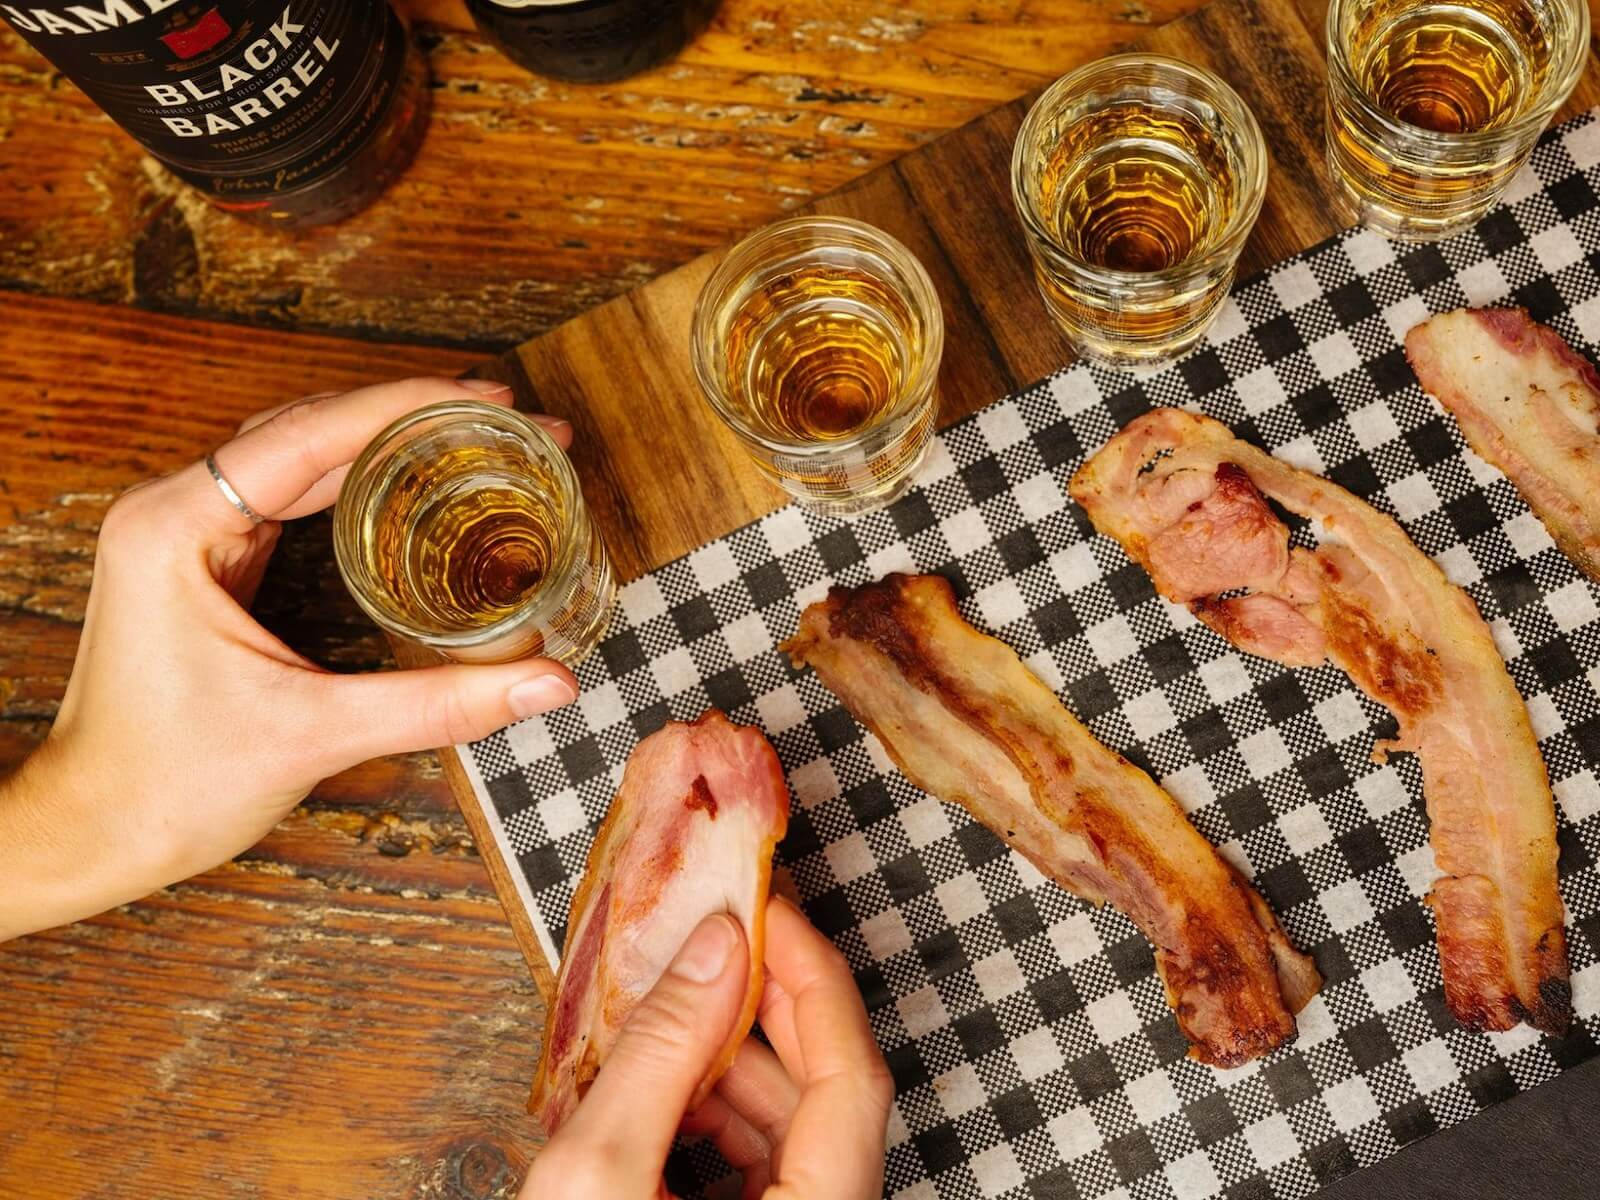 4 shots of whiskey on a table with a streak of bacon next to each to dip into the shot glass